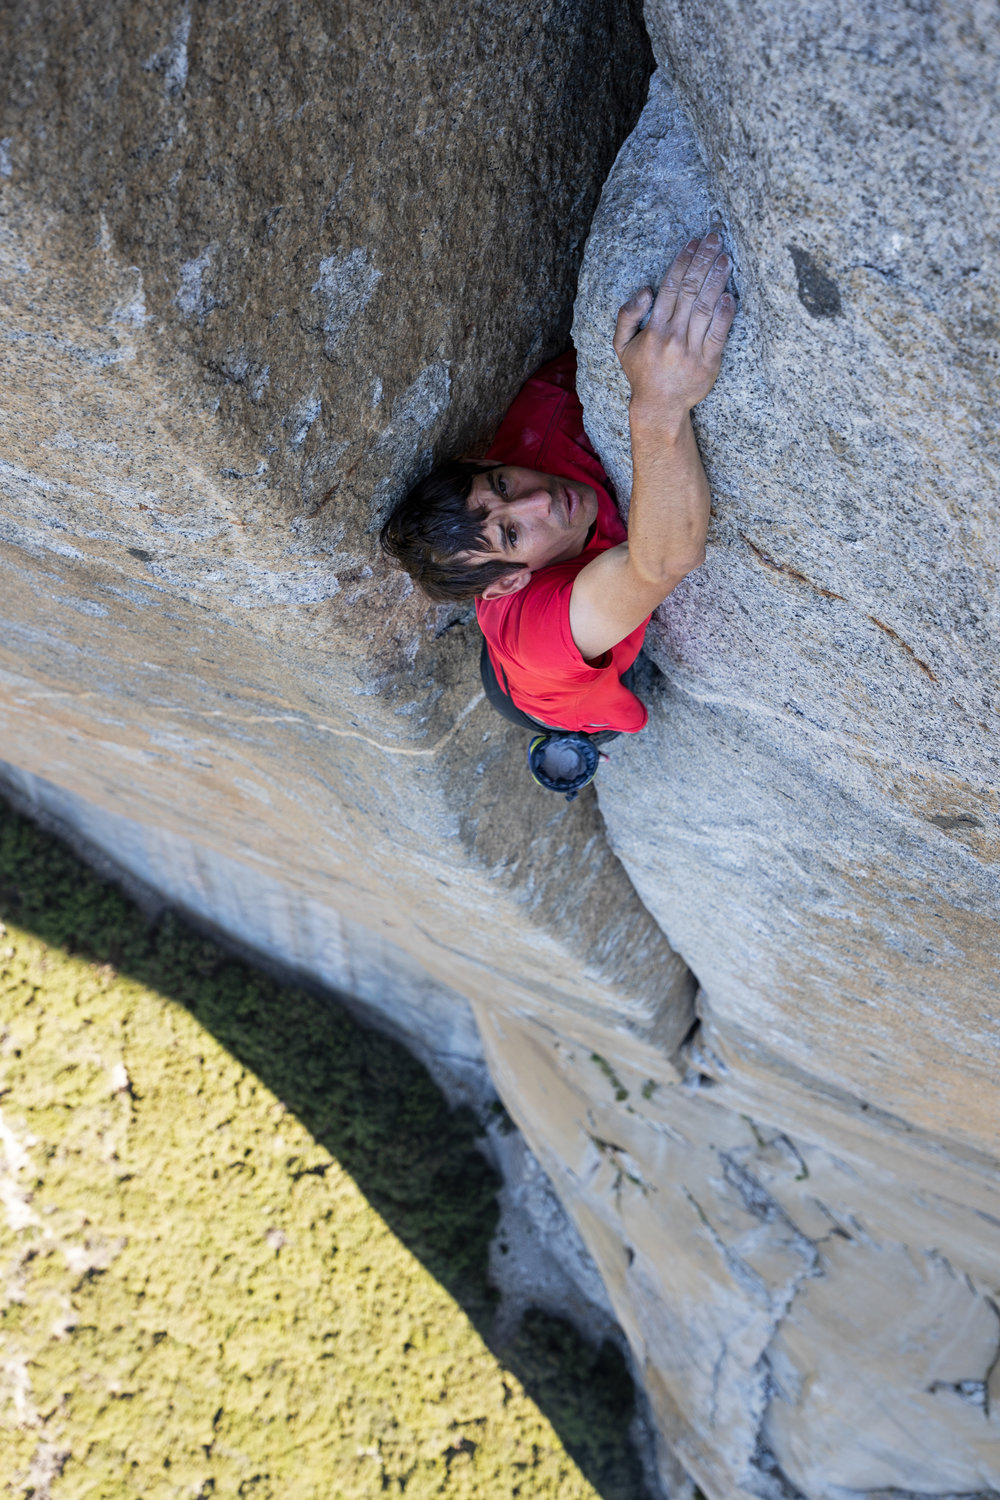 FreeSolo_Photographs © 2018 National Geographic Partners, LLC. All rights reserved.07.jpg